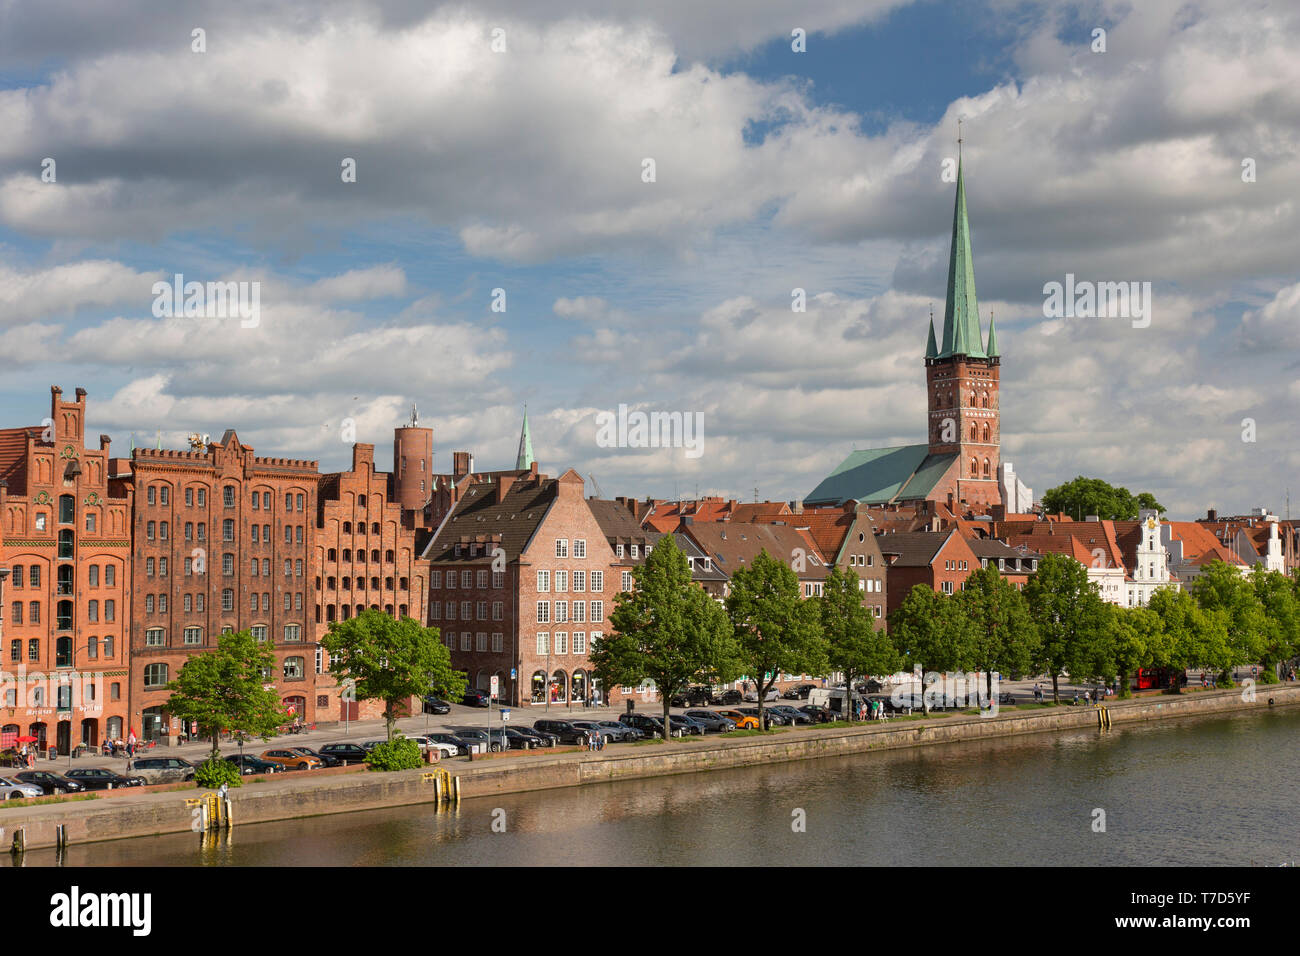 St. Petri Church / Petrikirche and historic houses along the river Trave at Hanseatic town Lübeck, Schleswig-Holstein, Germany - Stock Image